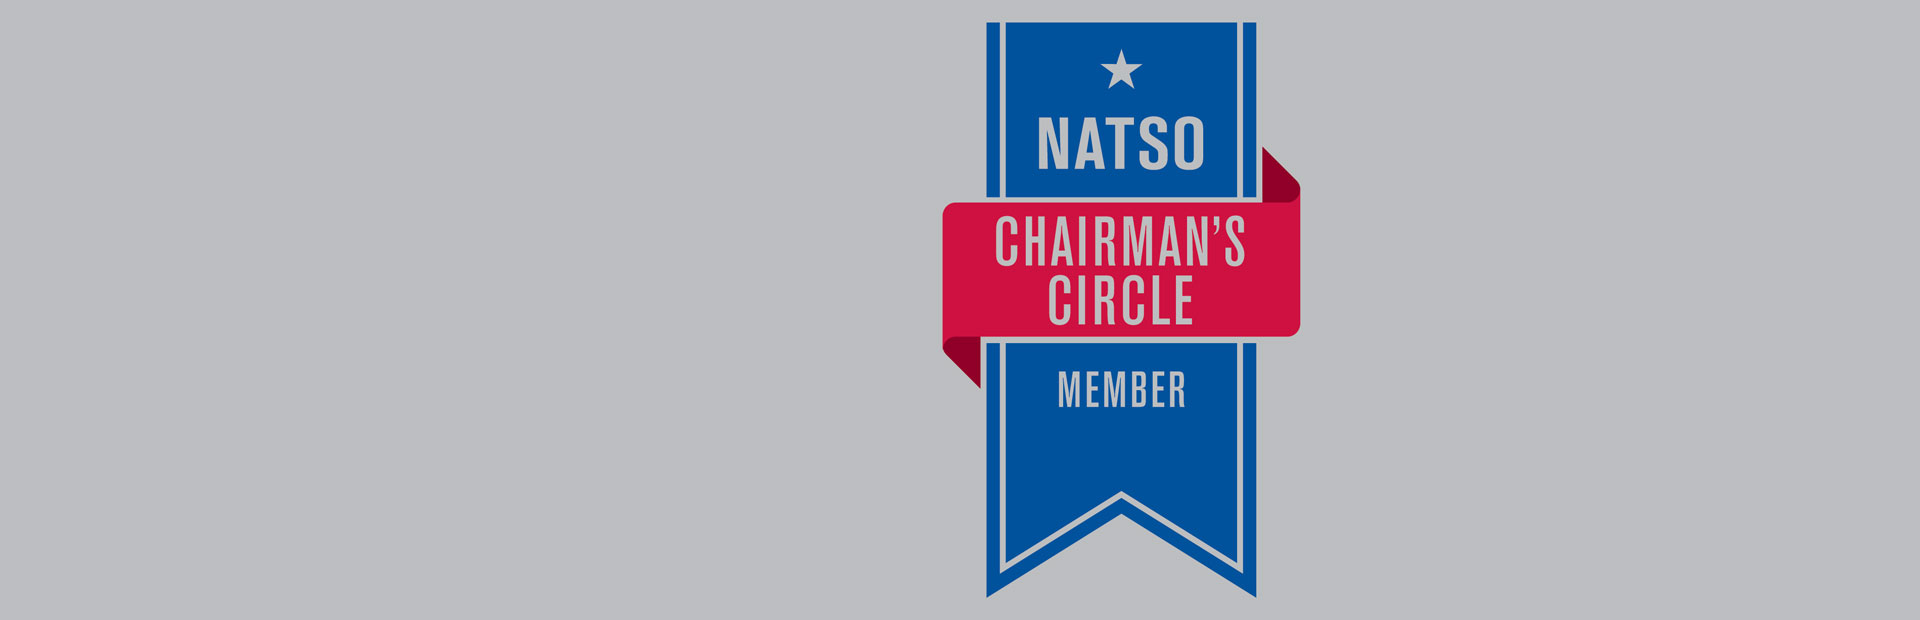 NATSO Supplier Partners Offer COVID-19 Resources